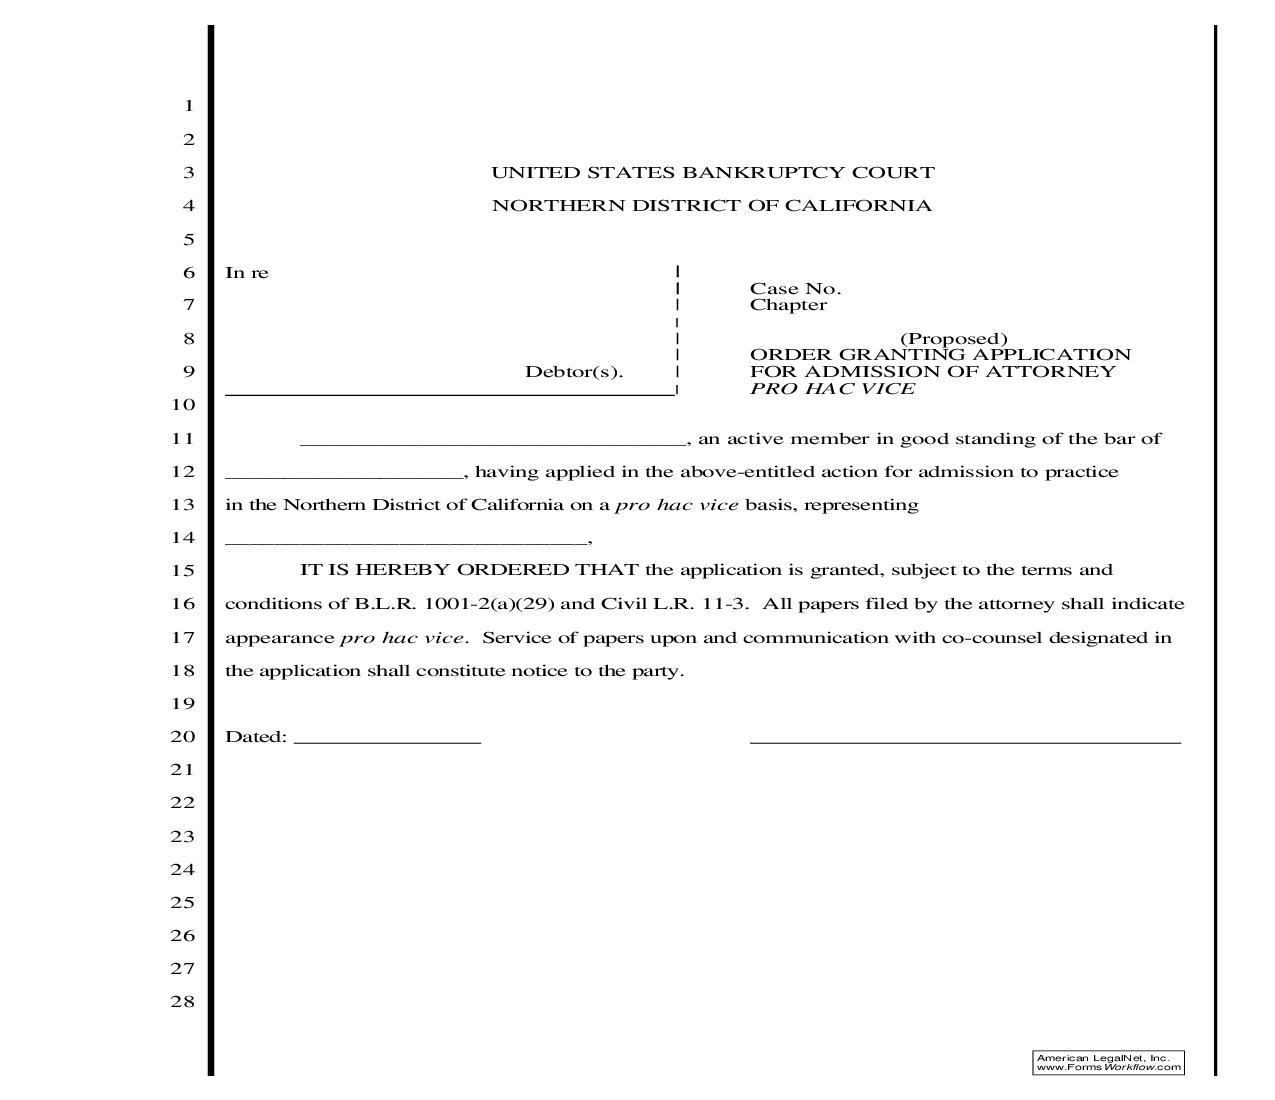 Order Granting Application For Admission Of Attorney Pro Hac Vice (Bankruptcy Court) | Pdf Fpdf Doc Docx | California